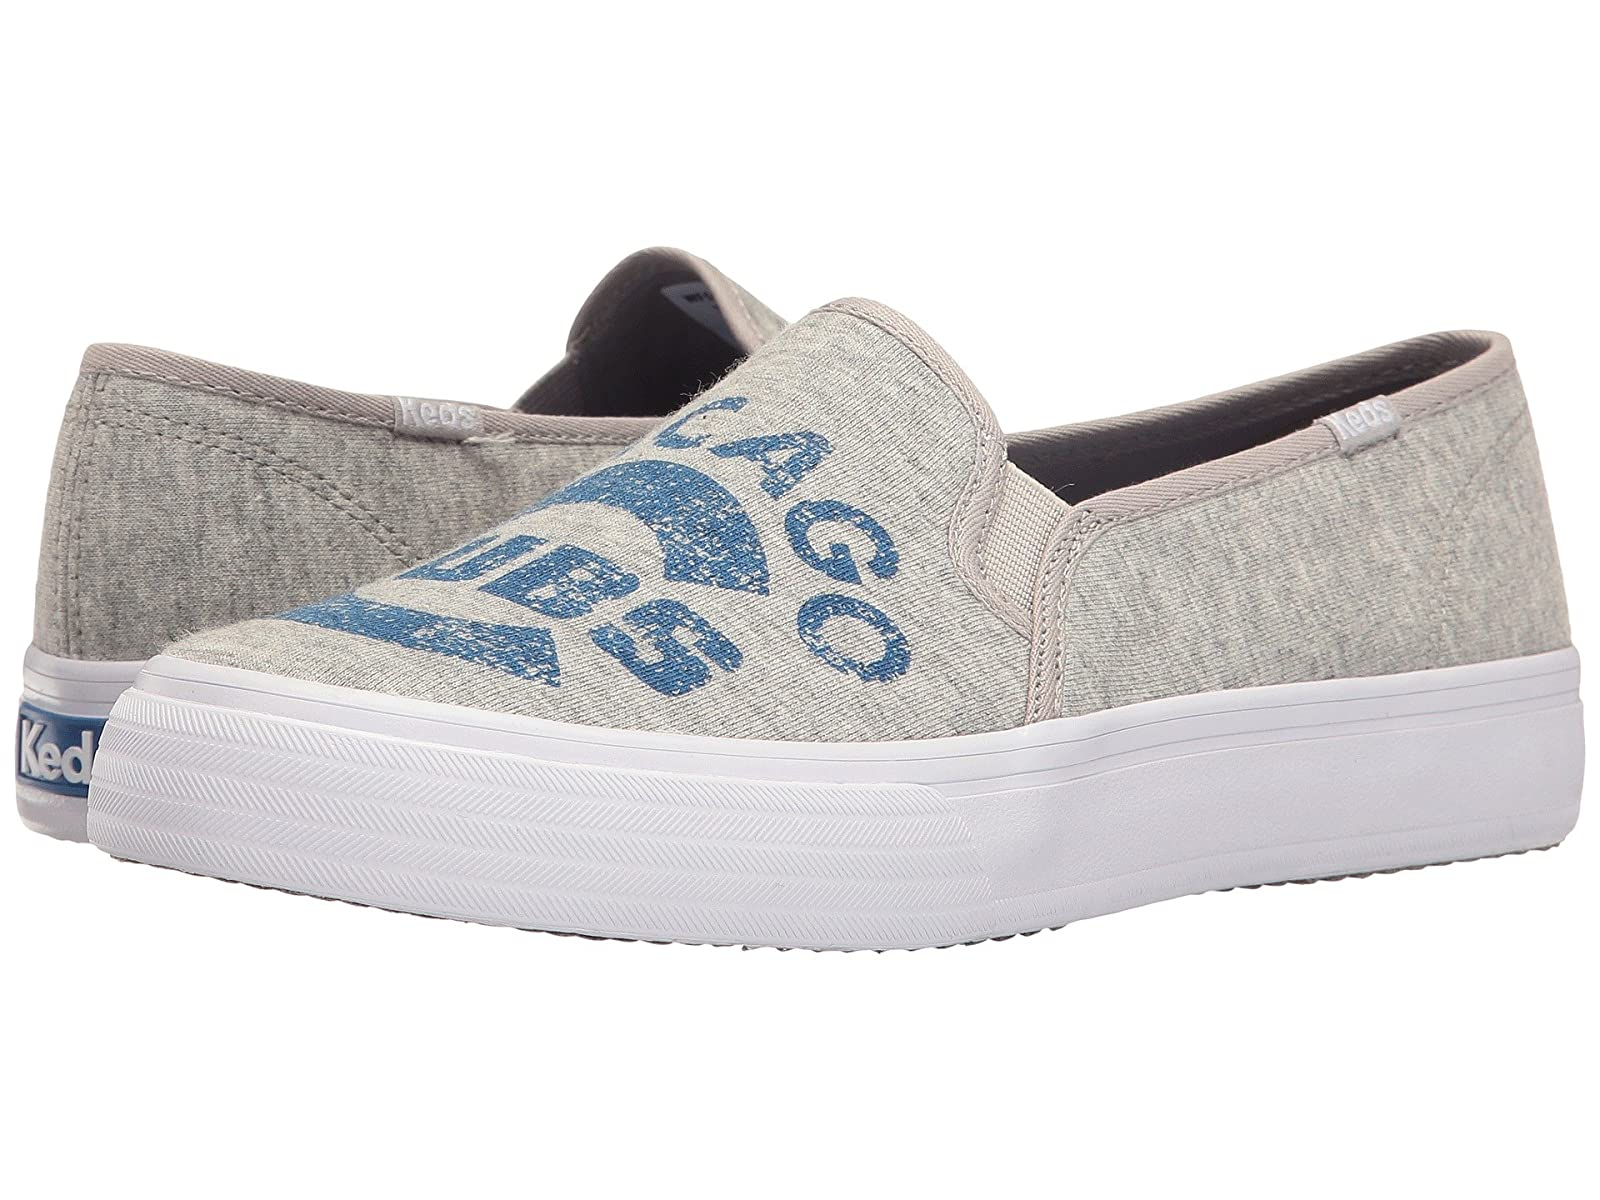 Keds Double Decker MLB Cubs JerseyCheap and distinctive eye-catching shoes